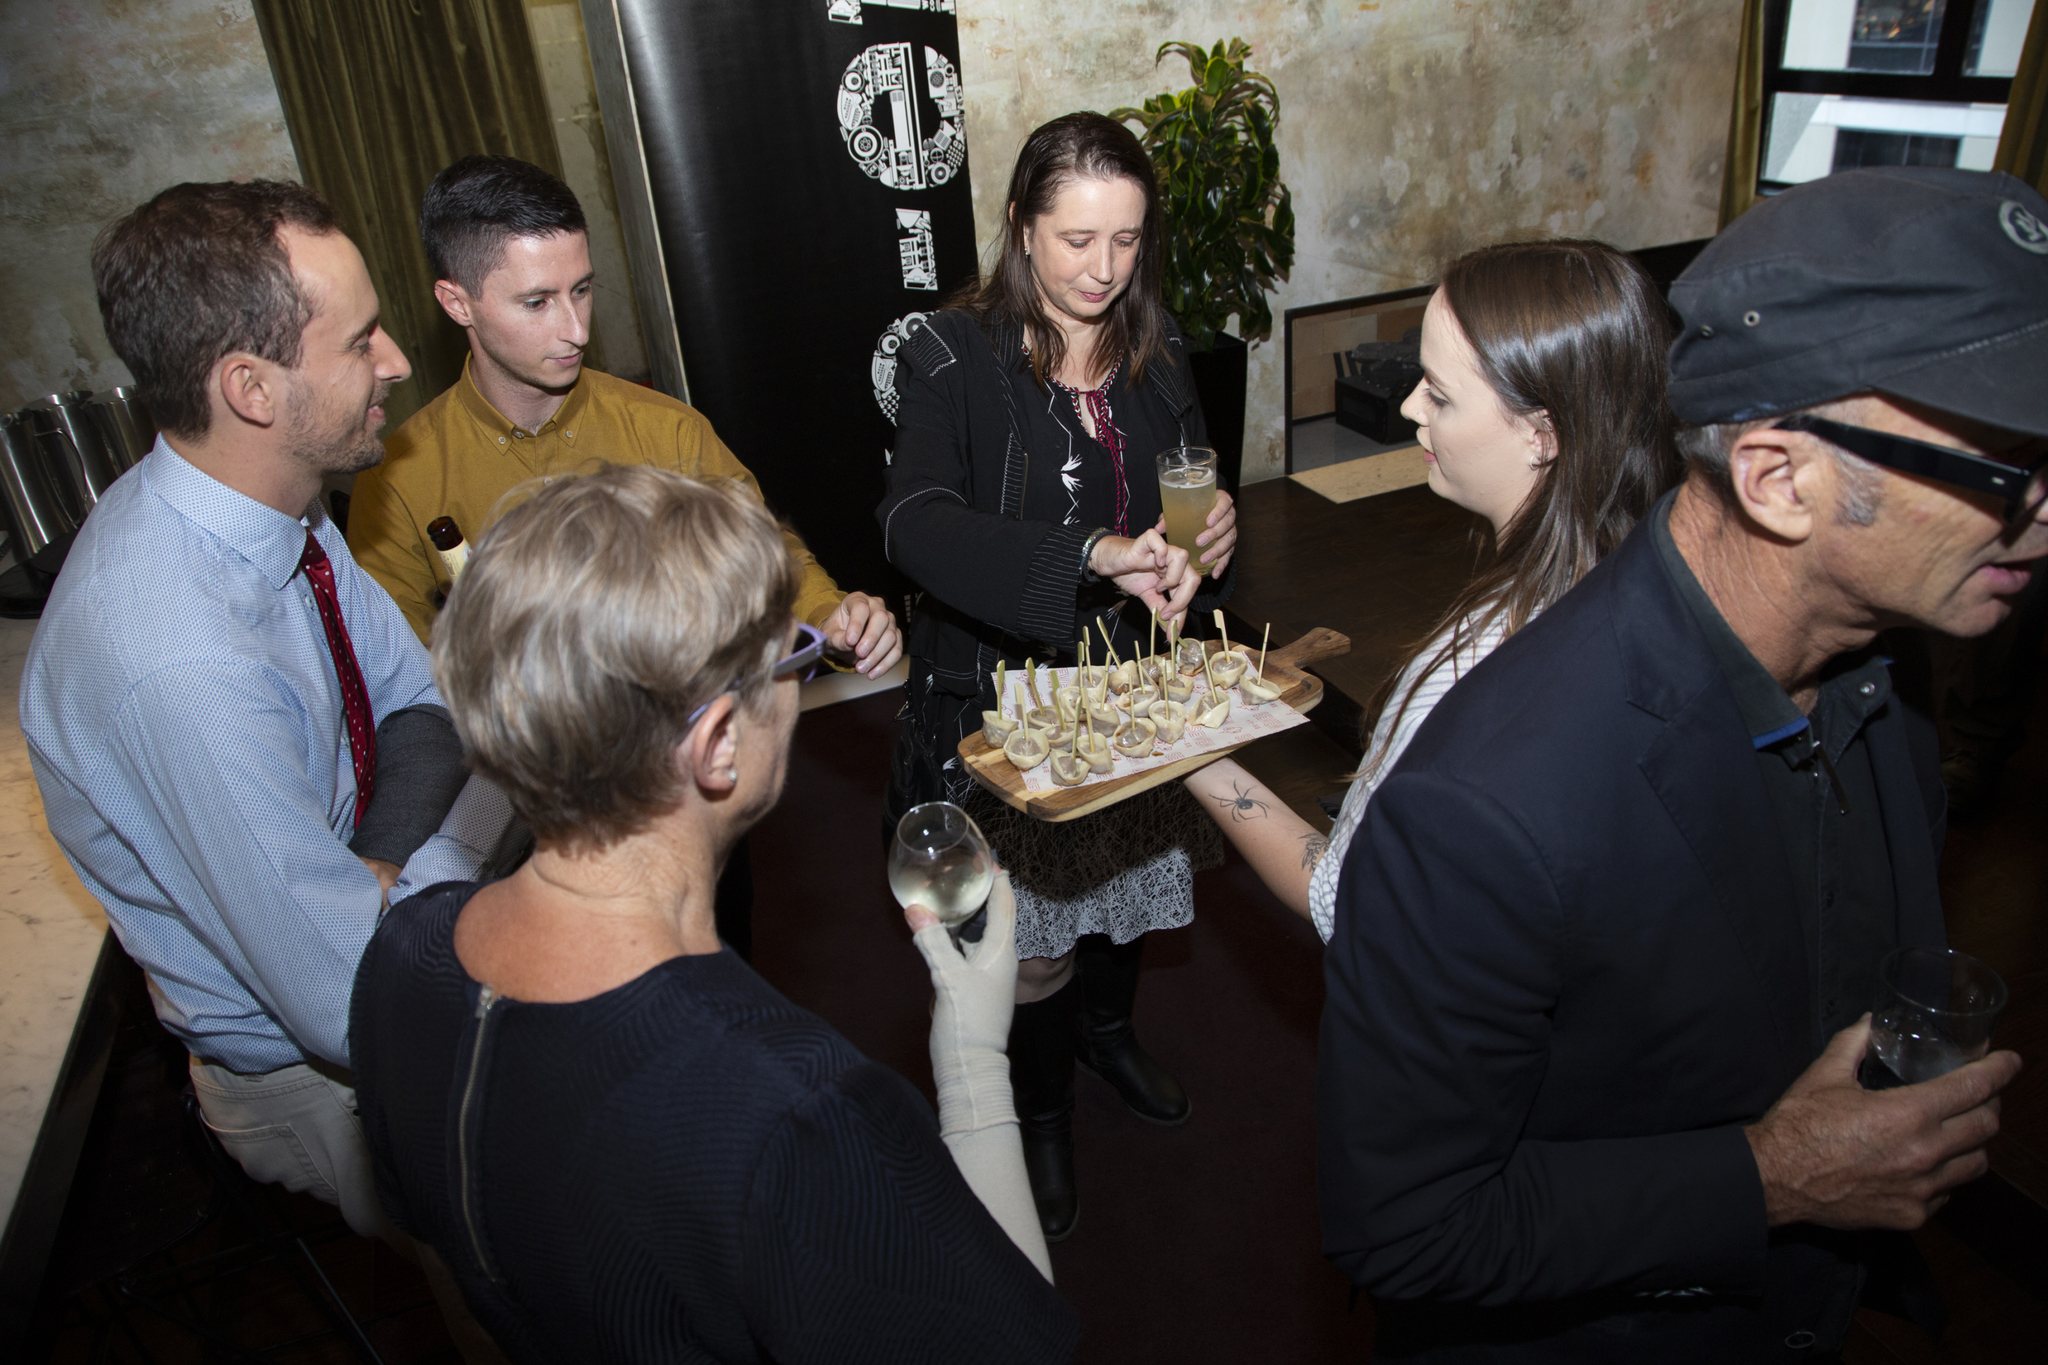 Guests at the cocktail evening said events like this are extremely important as a way of connecting with peers in the profession.